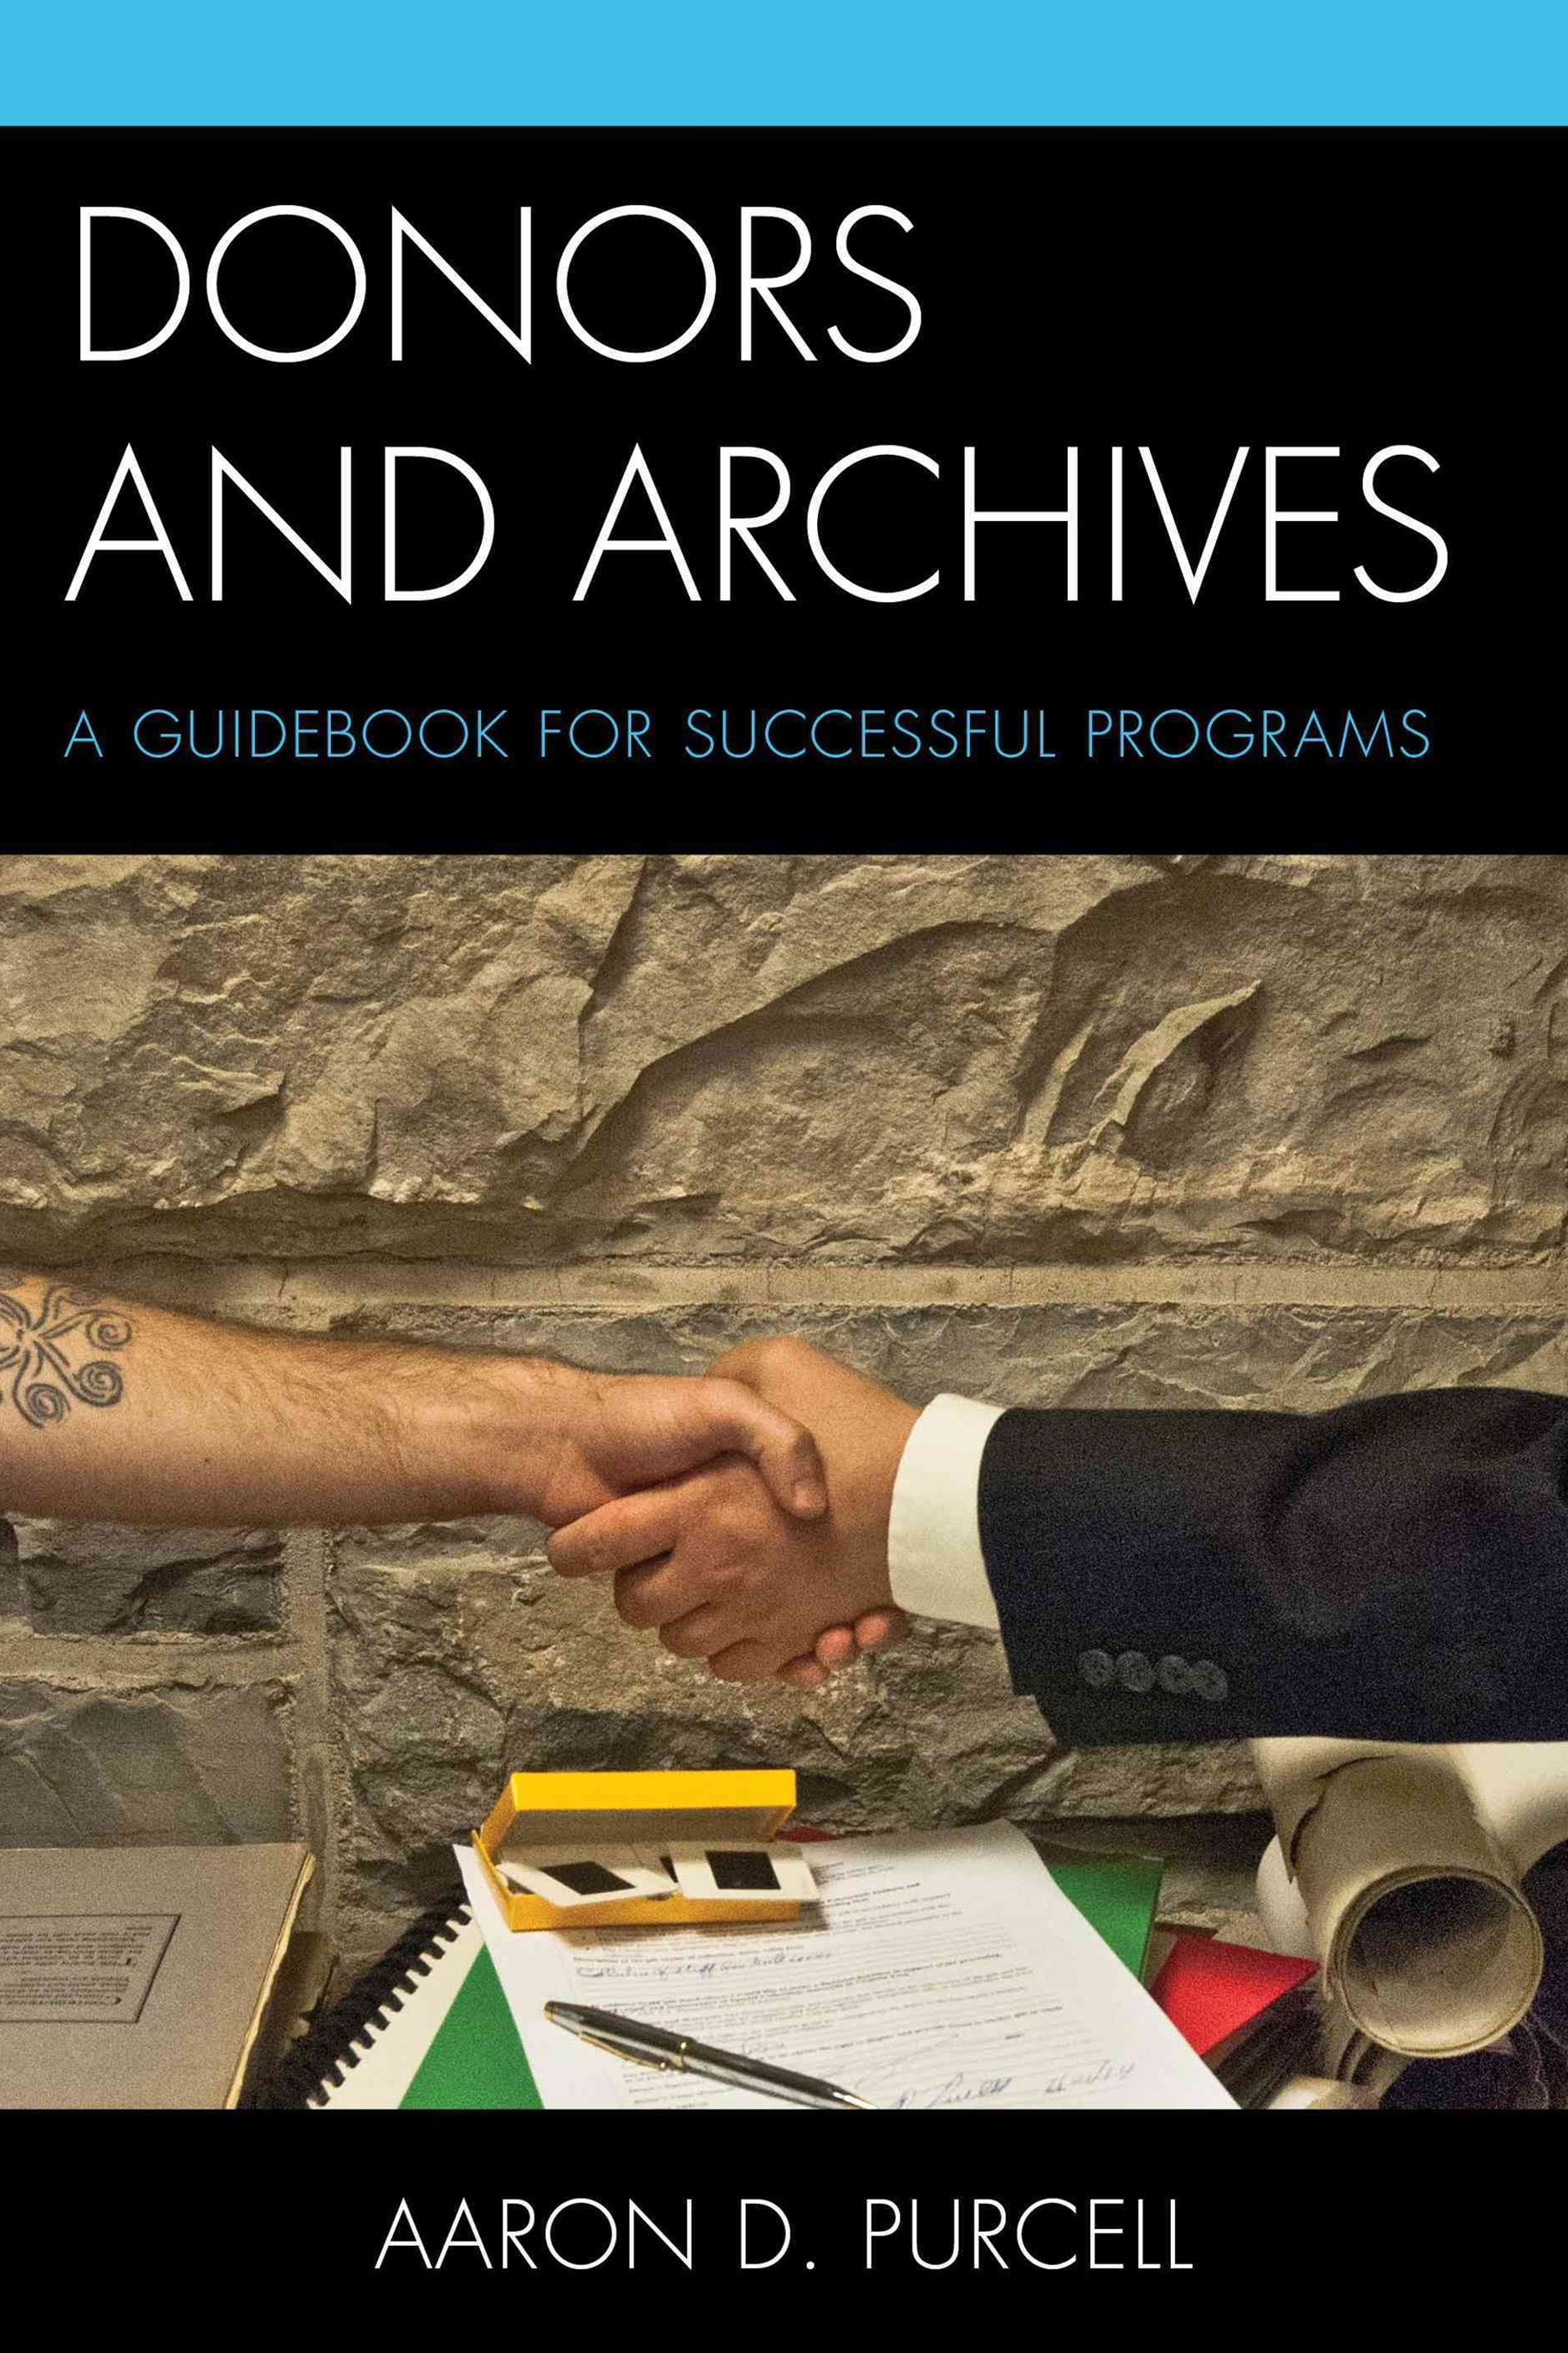 Donors and Archives